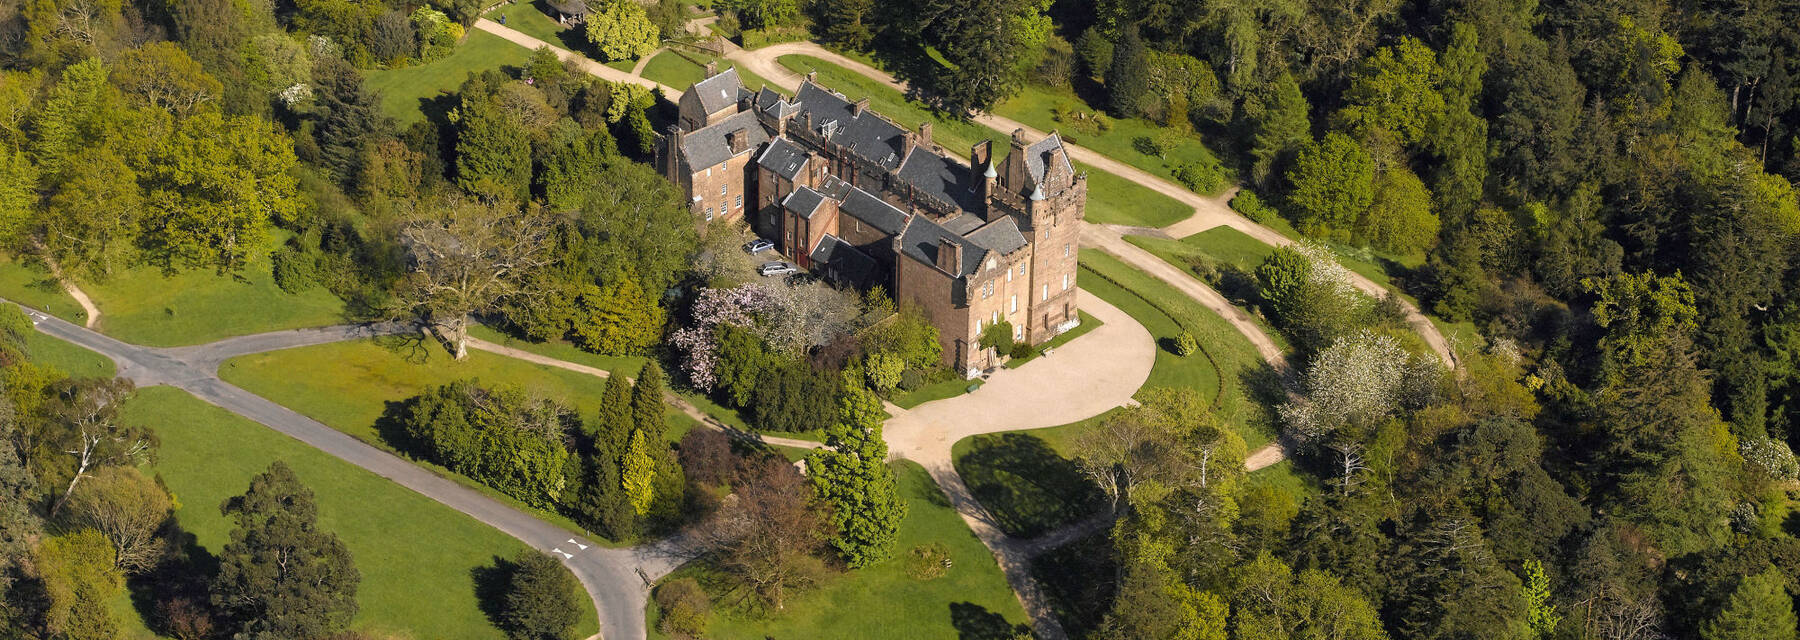 Aerial view of Brodick Castle